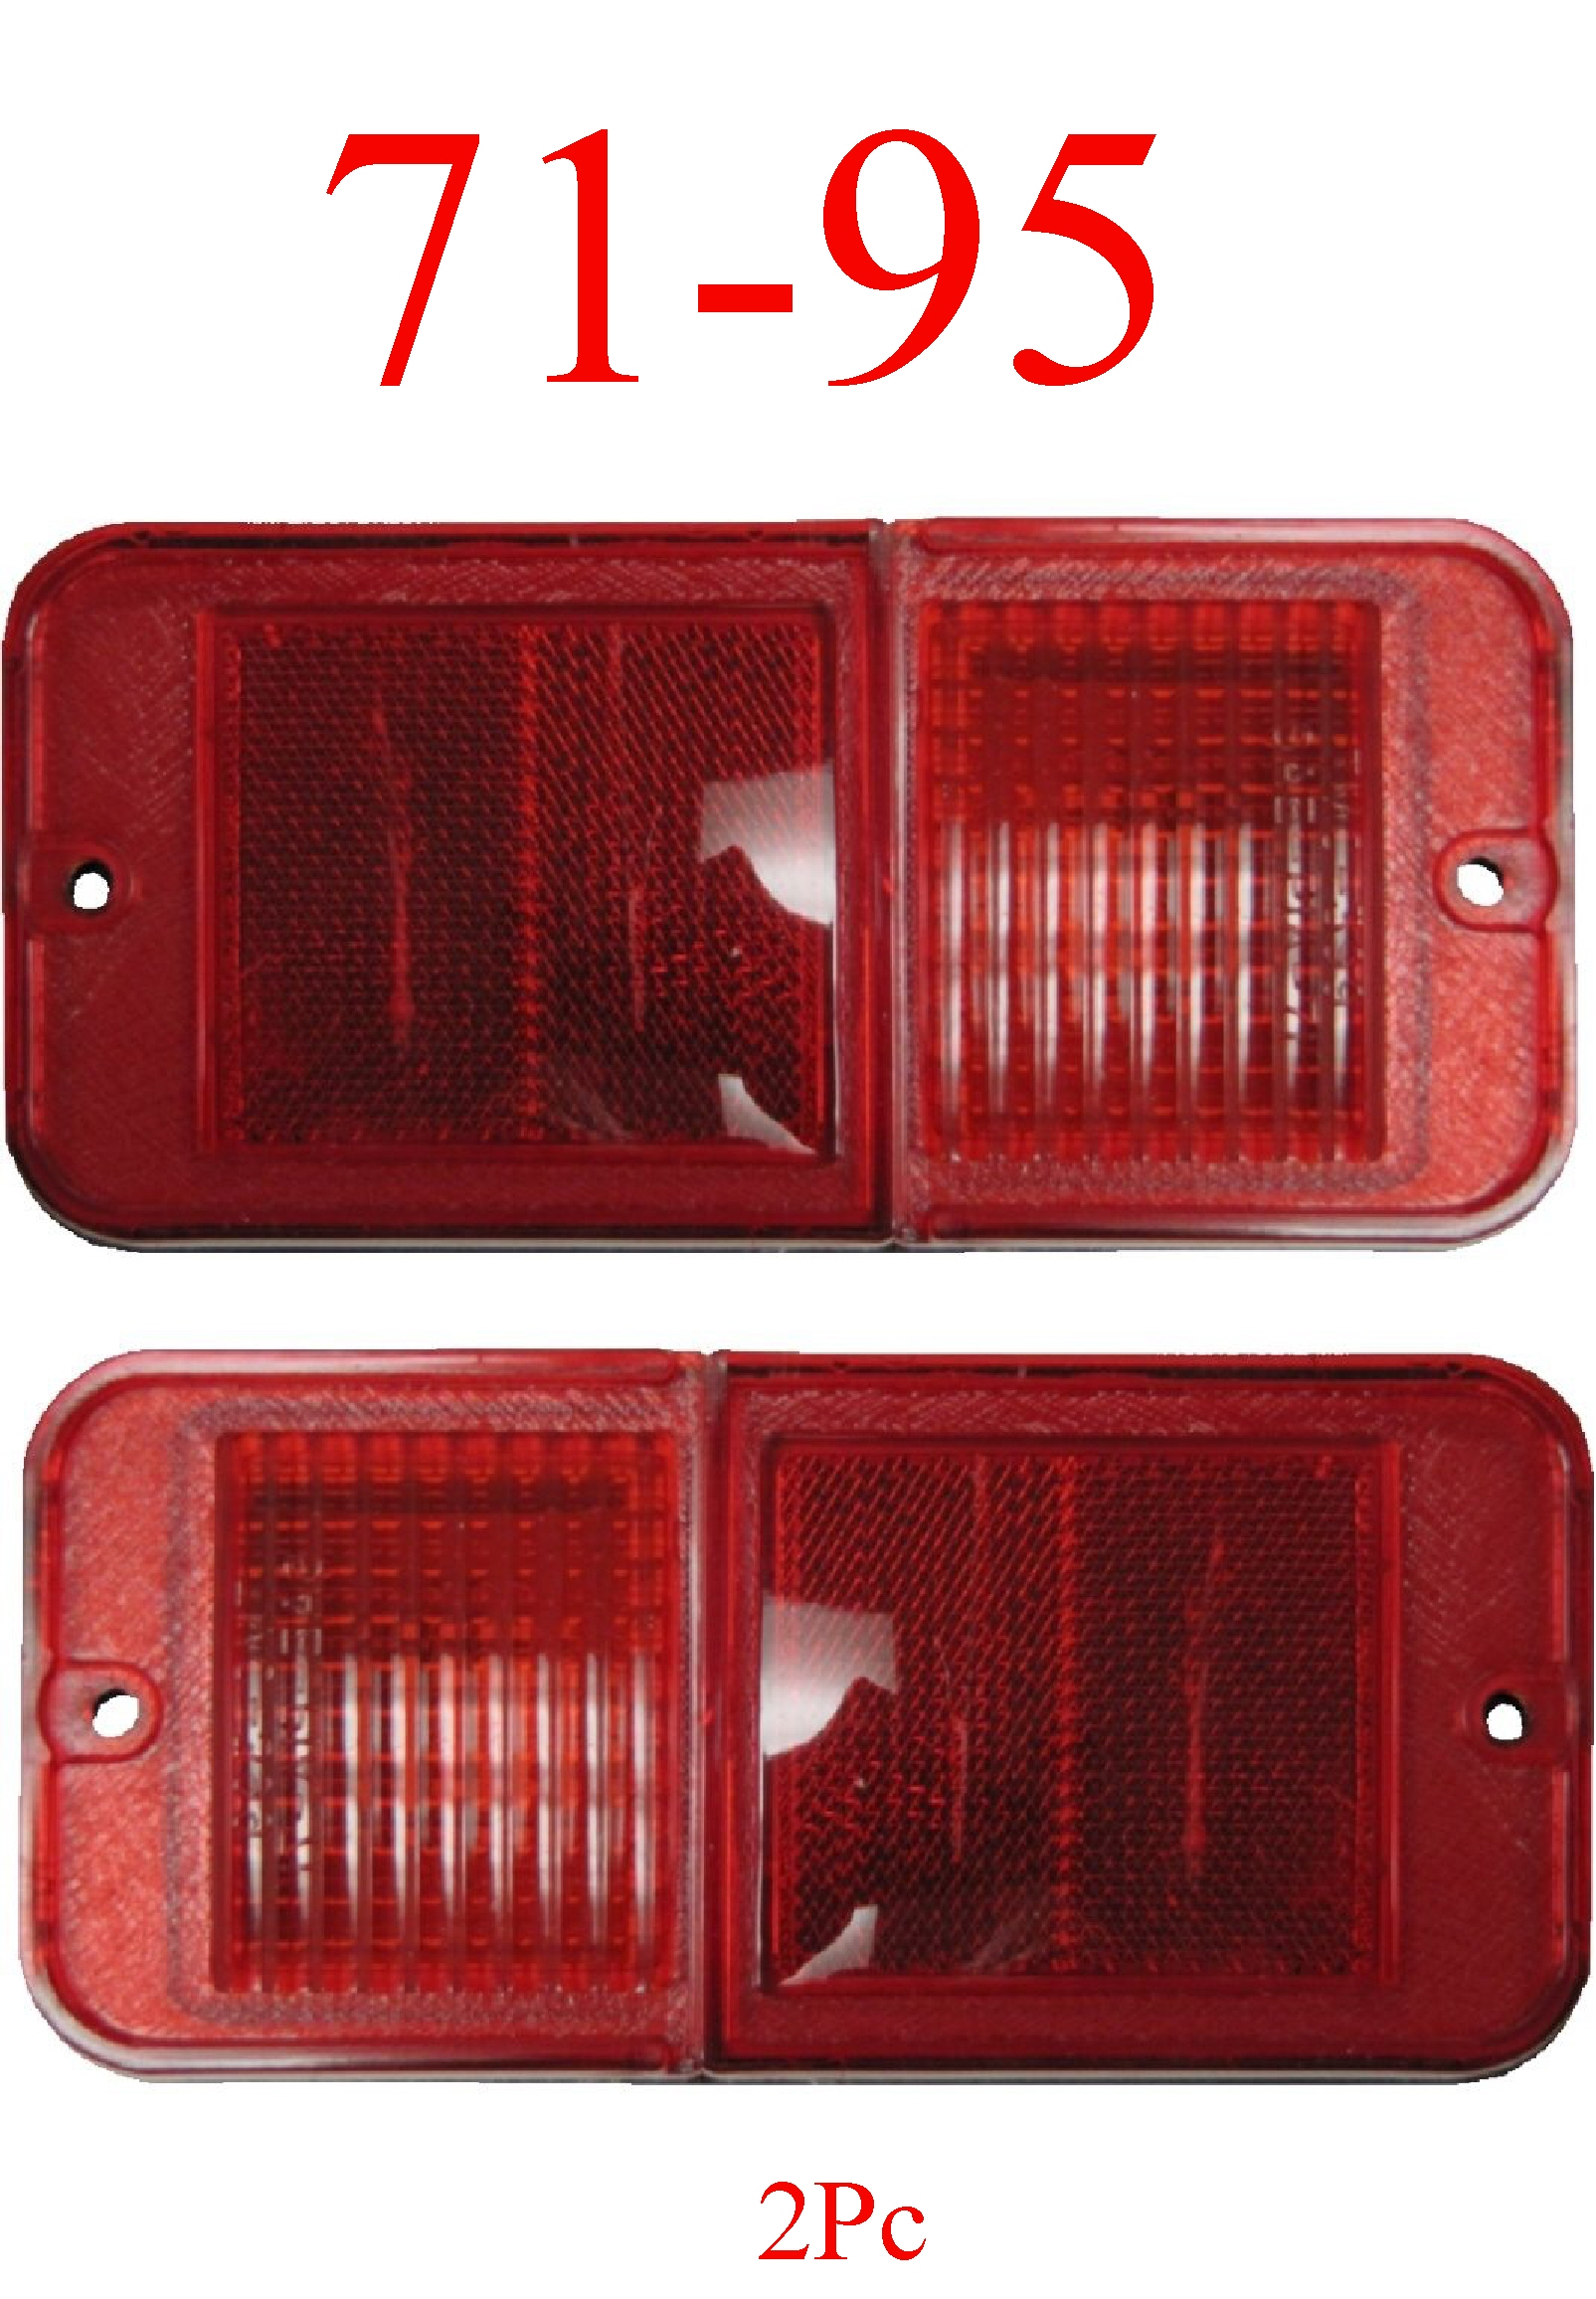 71-95 Chevy Van 2Pc Standard Red Rear Side Lights